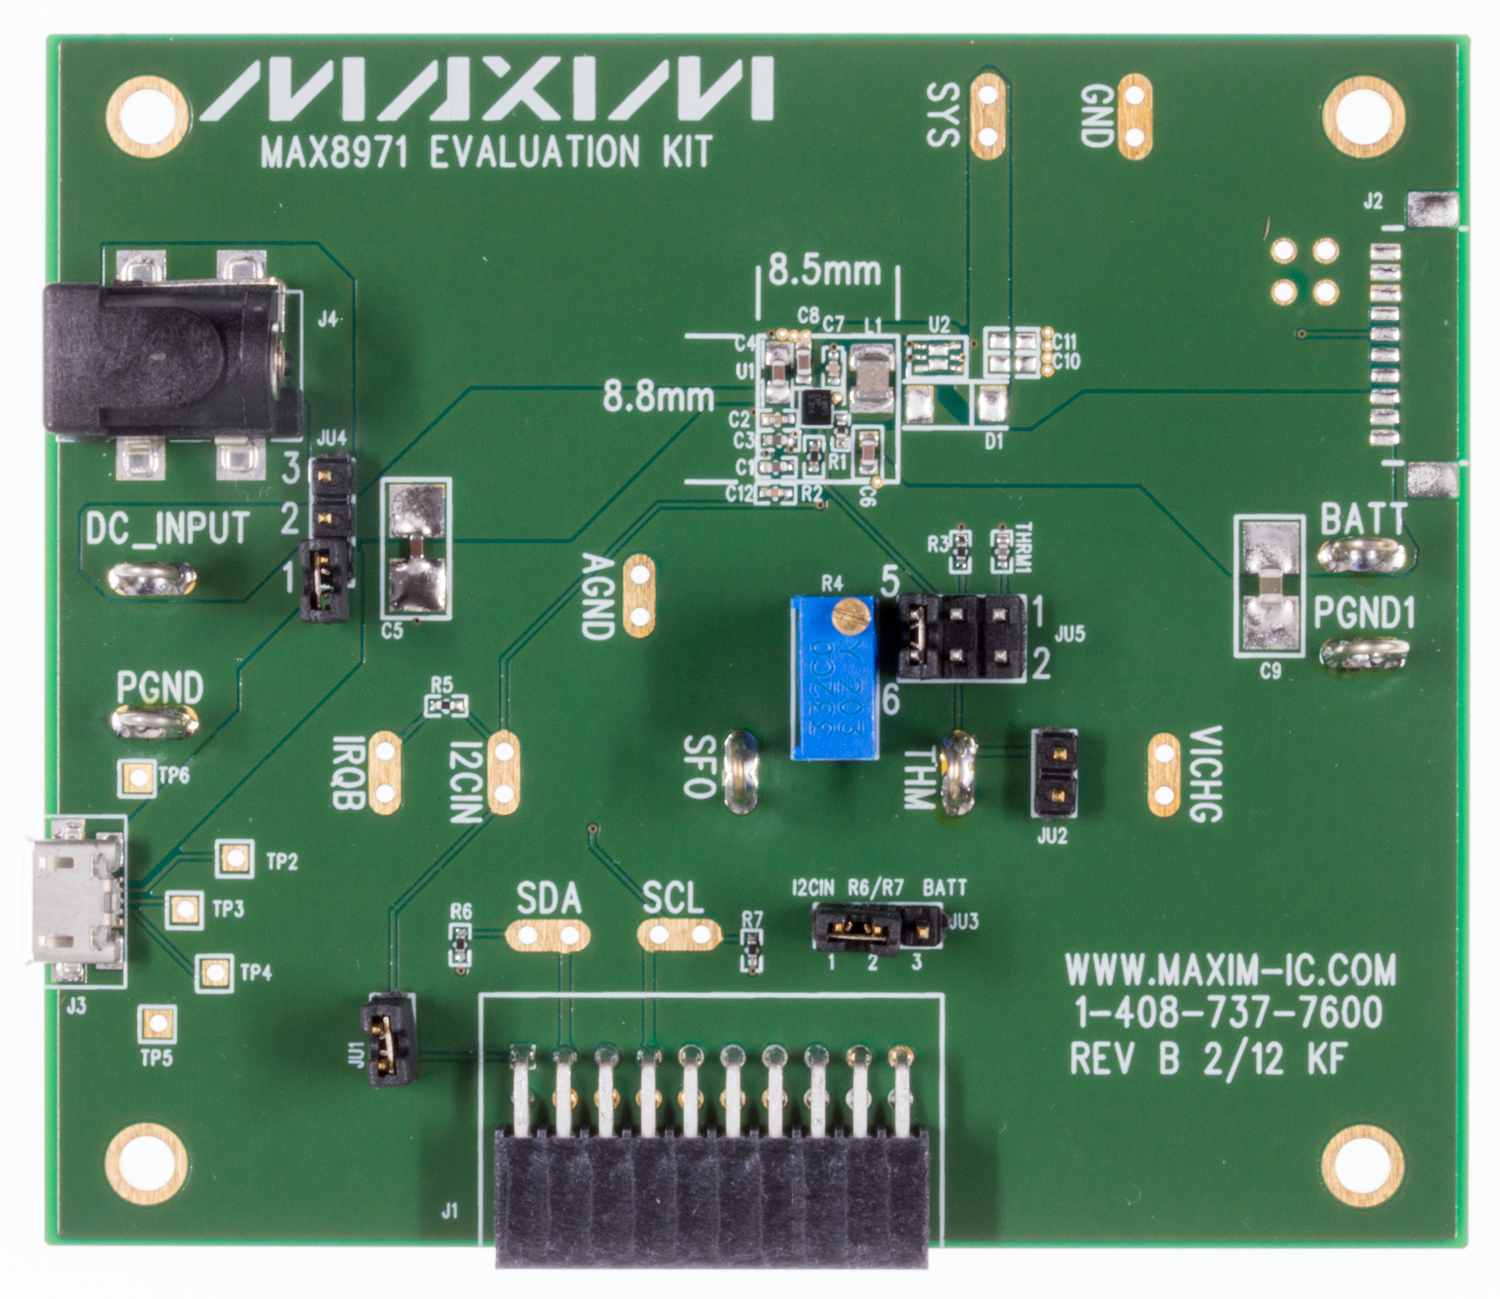 Battery Charger Ics Enable A Wide Range Of Design Op Maxim Simple Nicd Electronic Circuits Max8971evkit